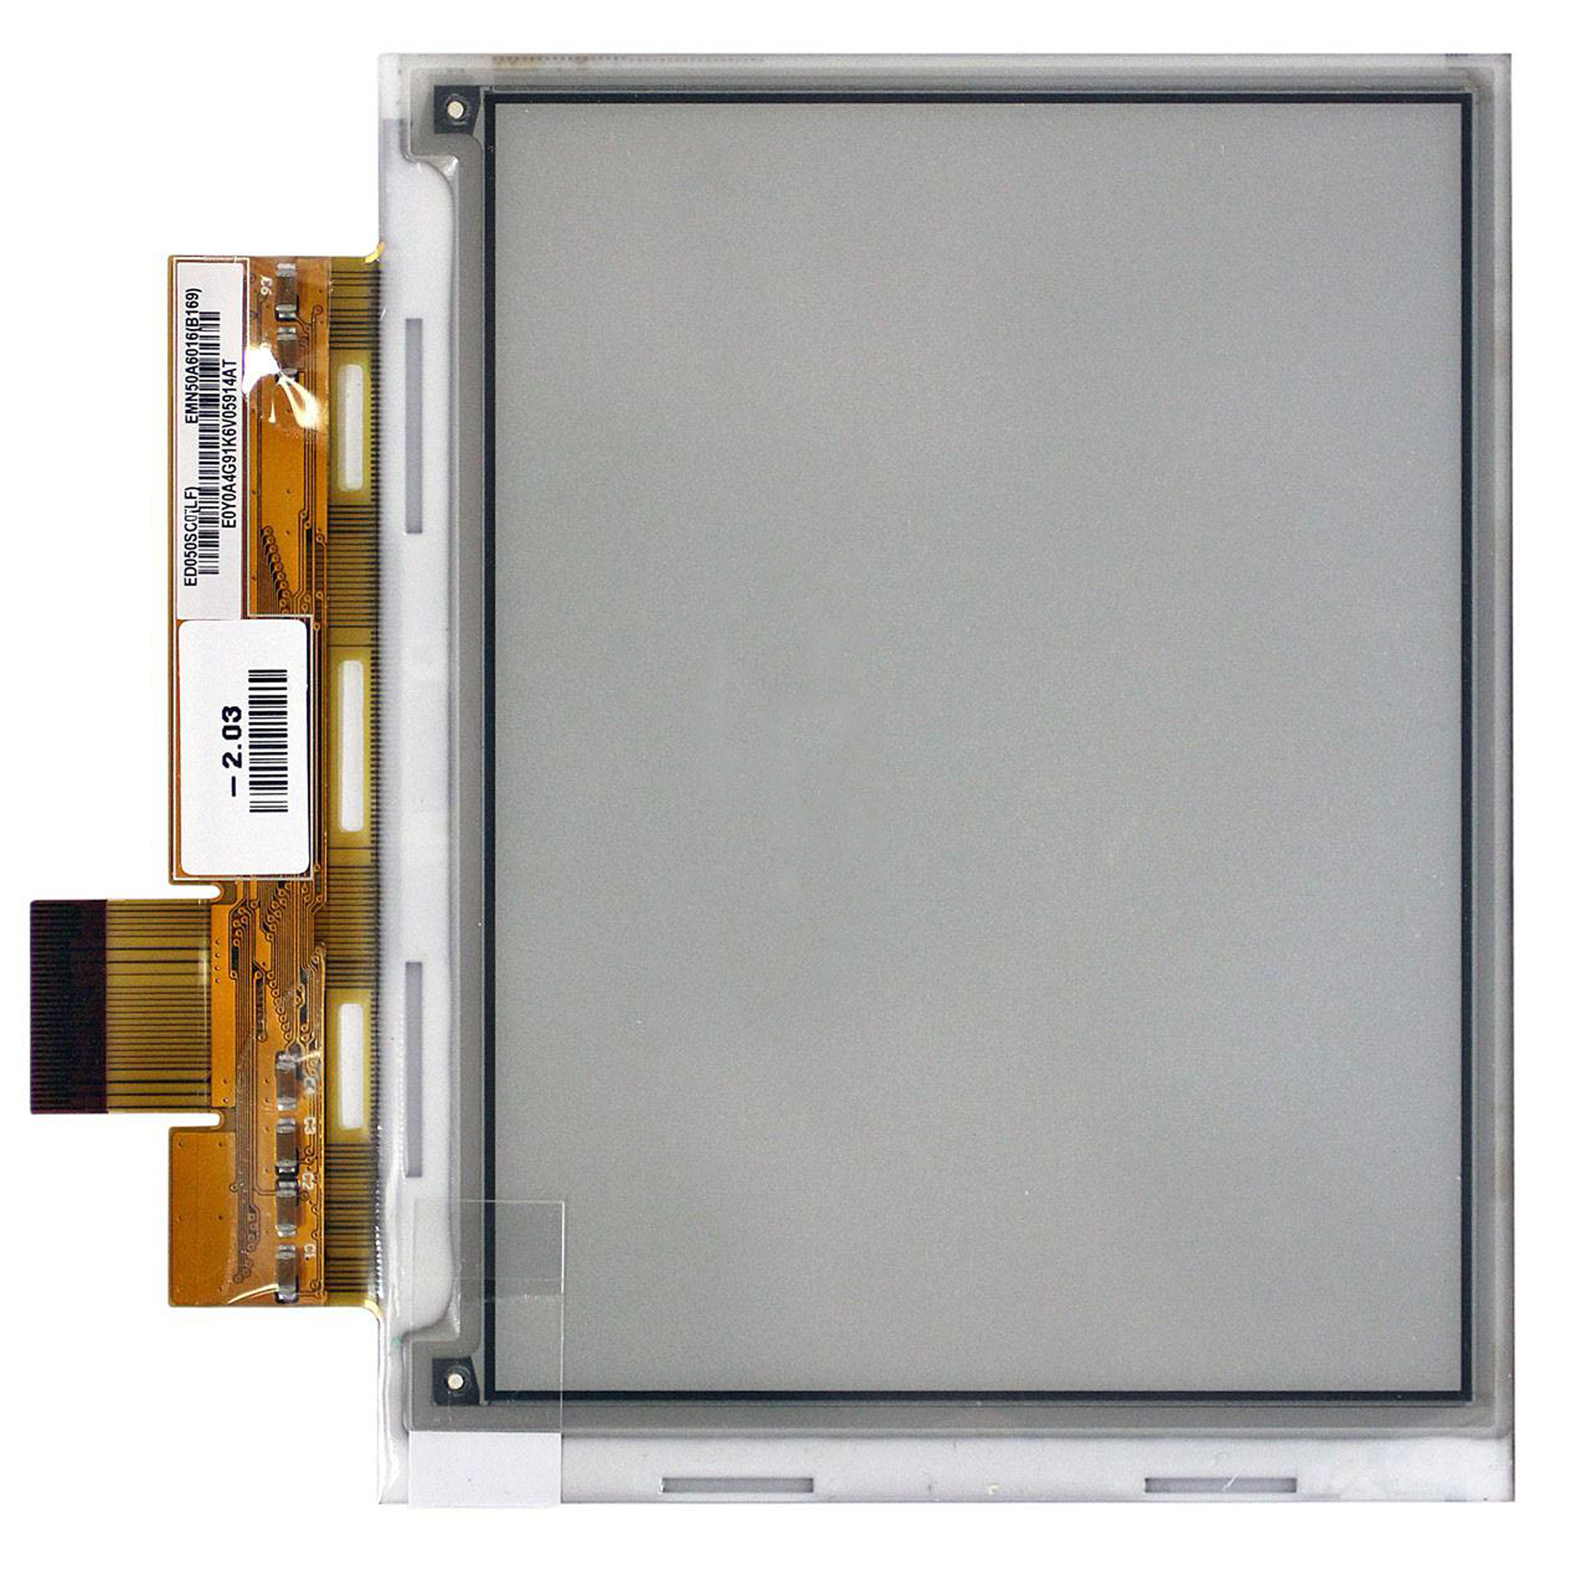 New Original 5 Inch 800*600 E-ink LCD Screen Display For Kobo mini Ebook Reader LCD display new original 5 inch e ink lcd display screen for pocketbook 360 ed050sc3 lf